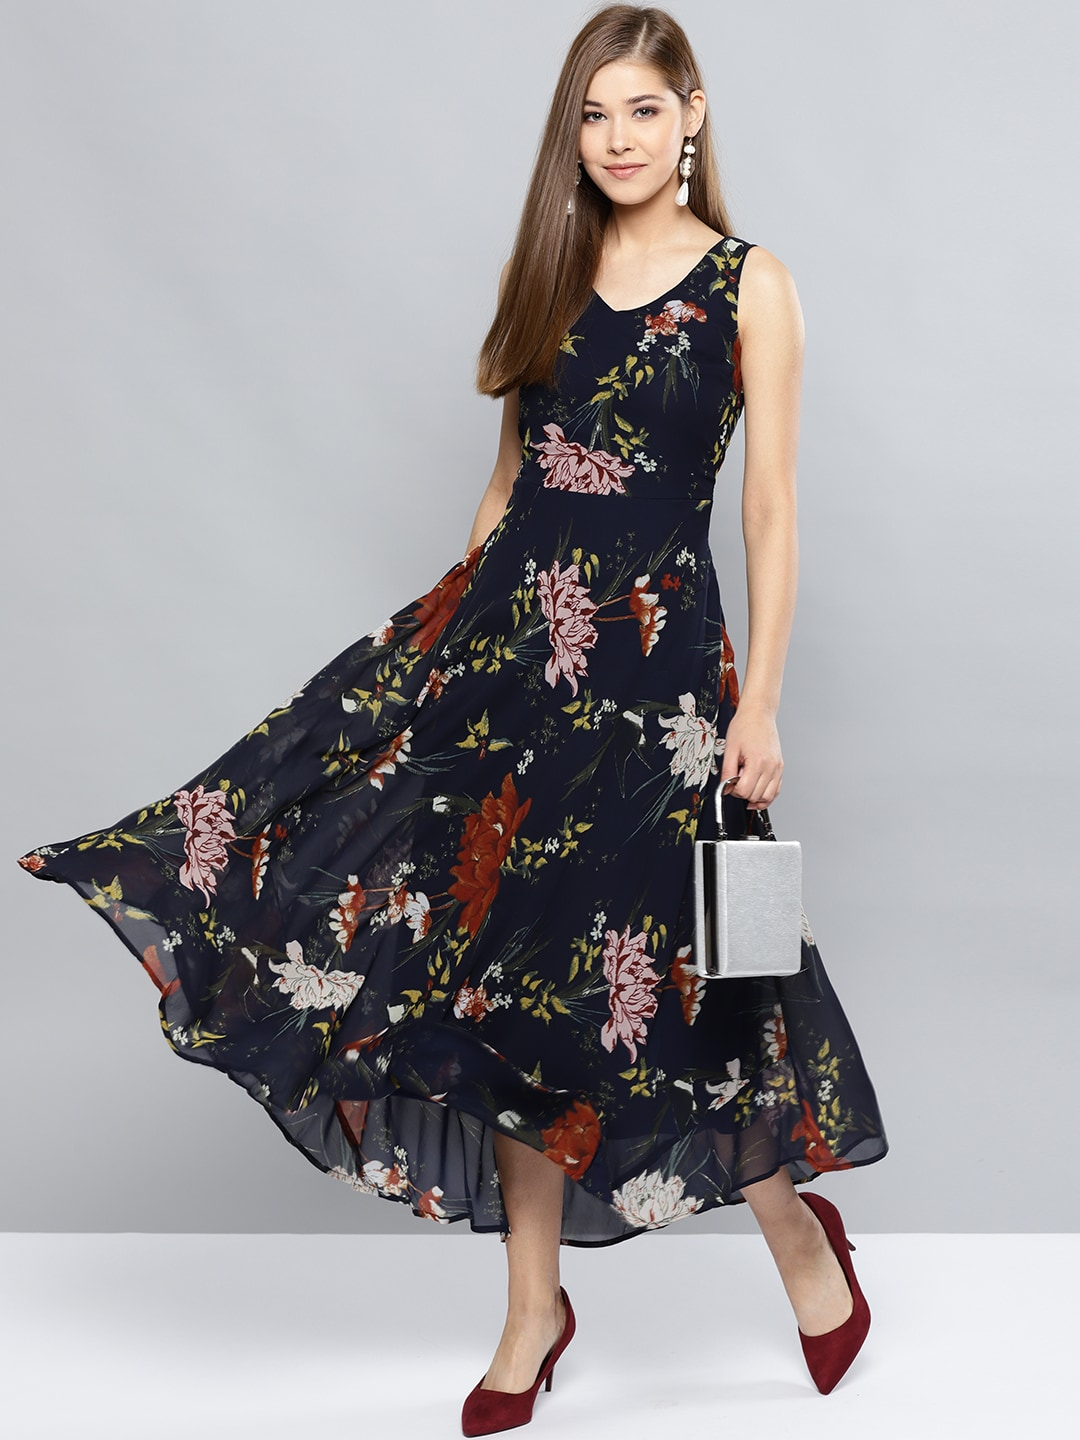 2d4c5db2ff3f Dresses - Buy Western Dresses for Women   Girls